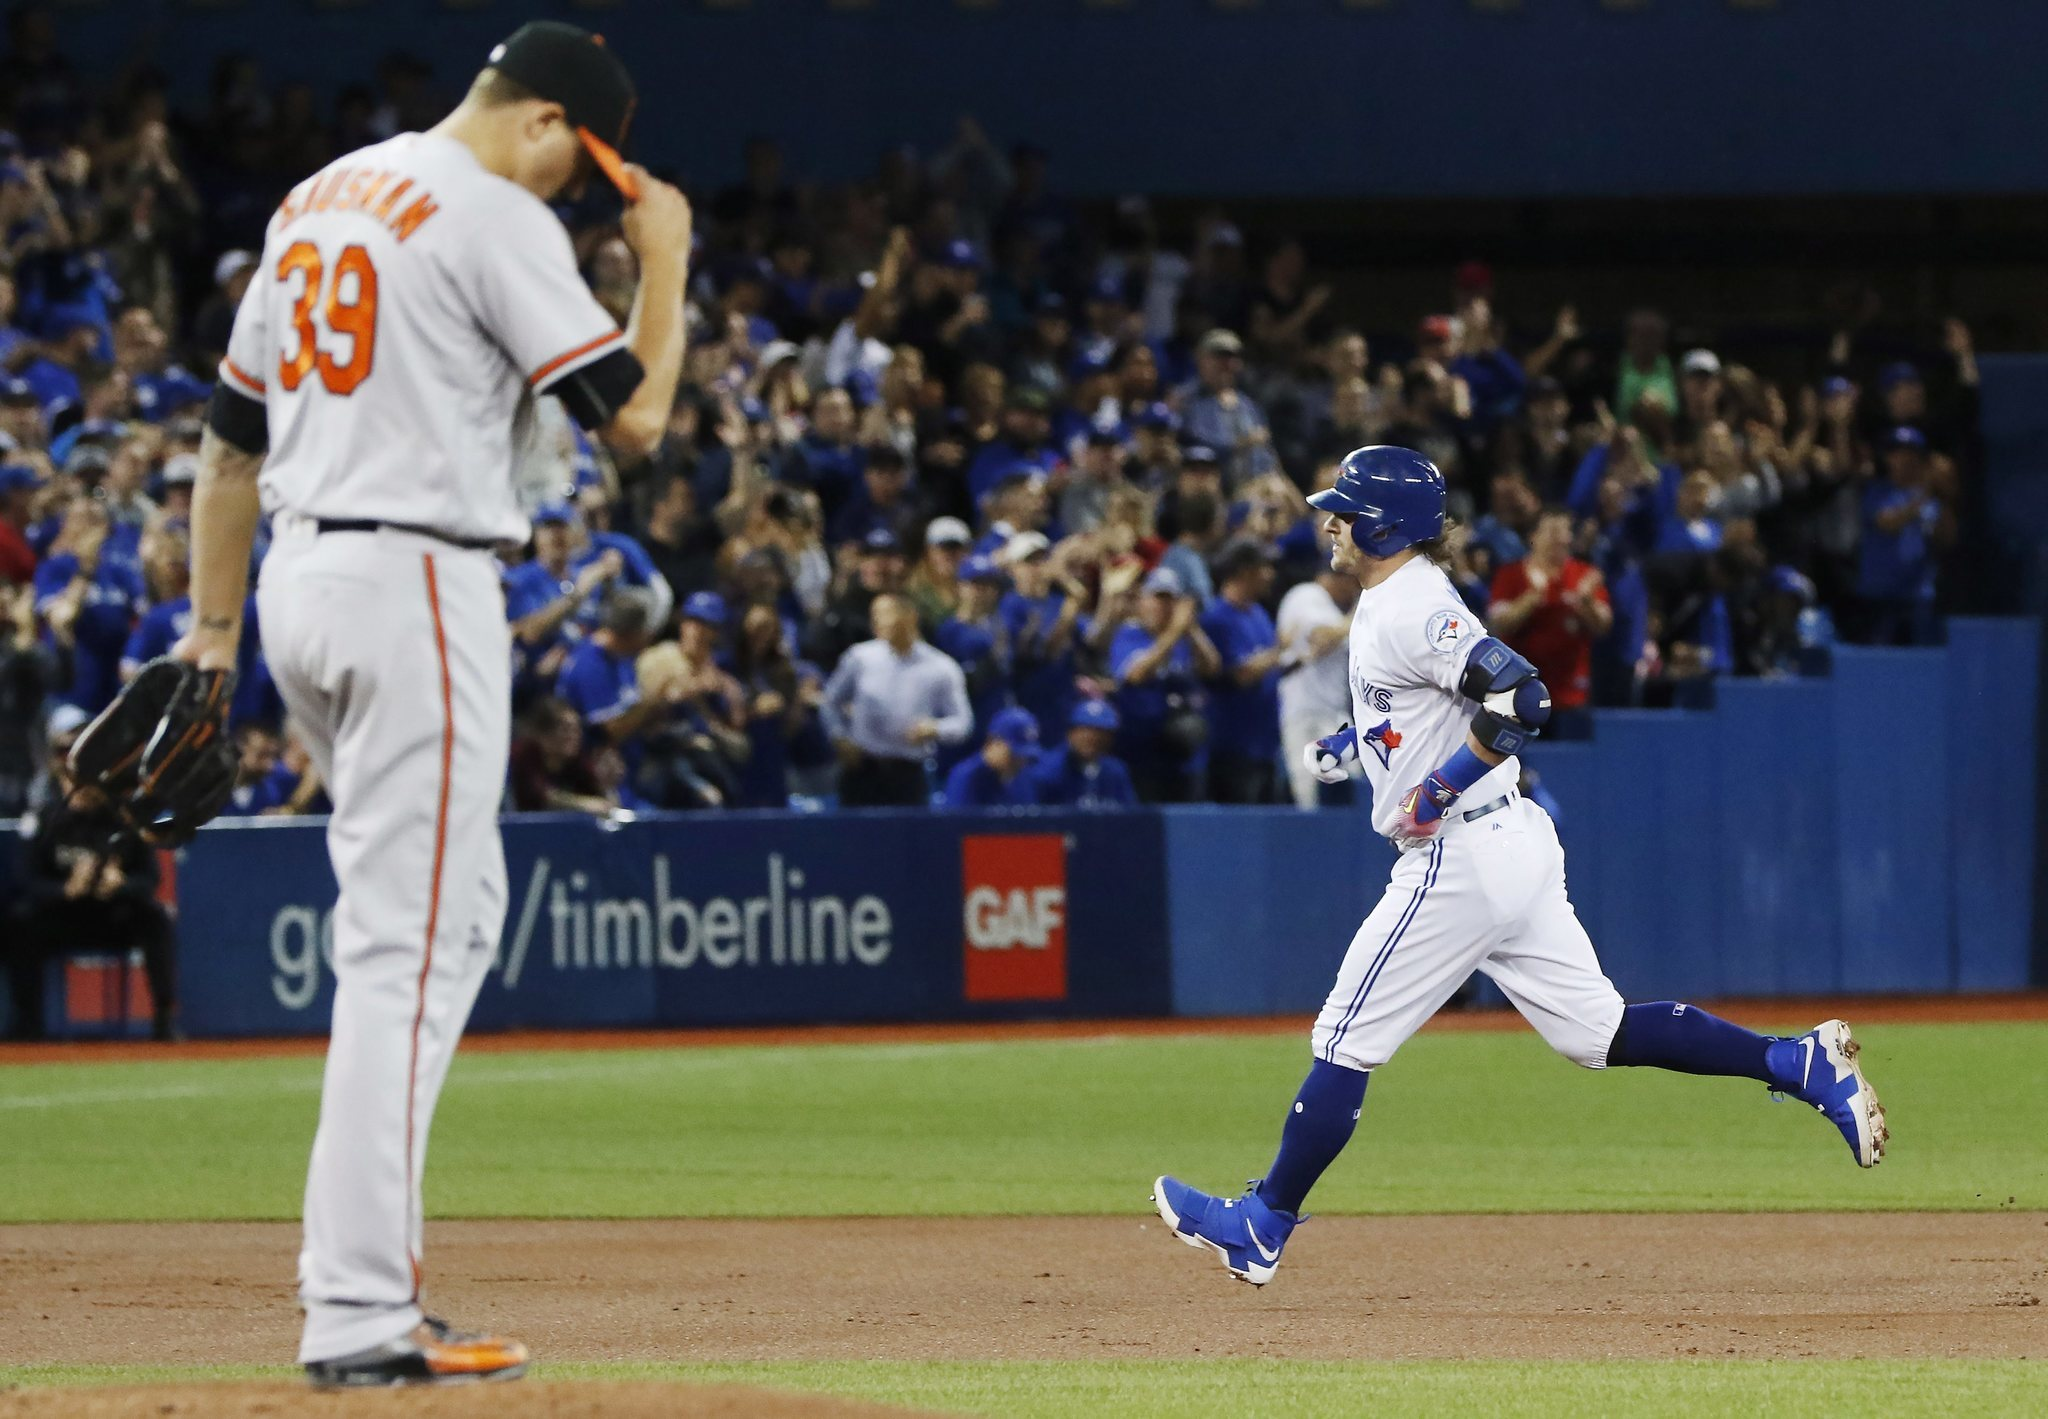 Bal-orioles-blue-jays-games-in-toronto-no-longer-your-typical-slugfests-20160927